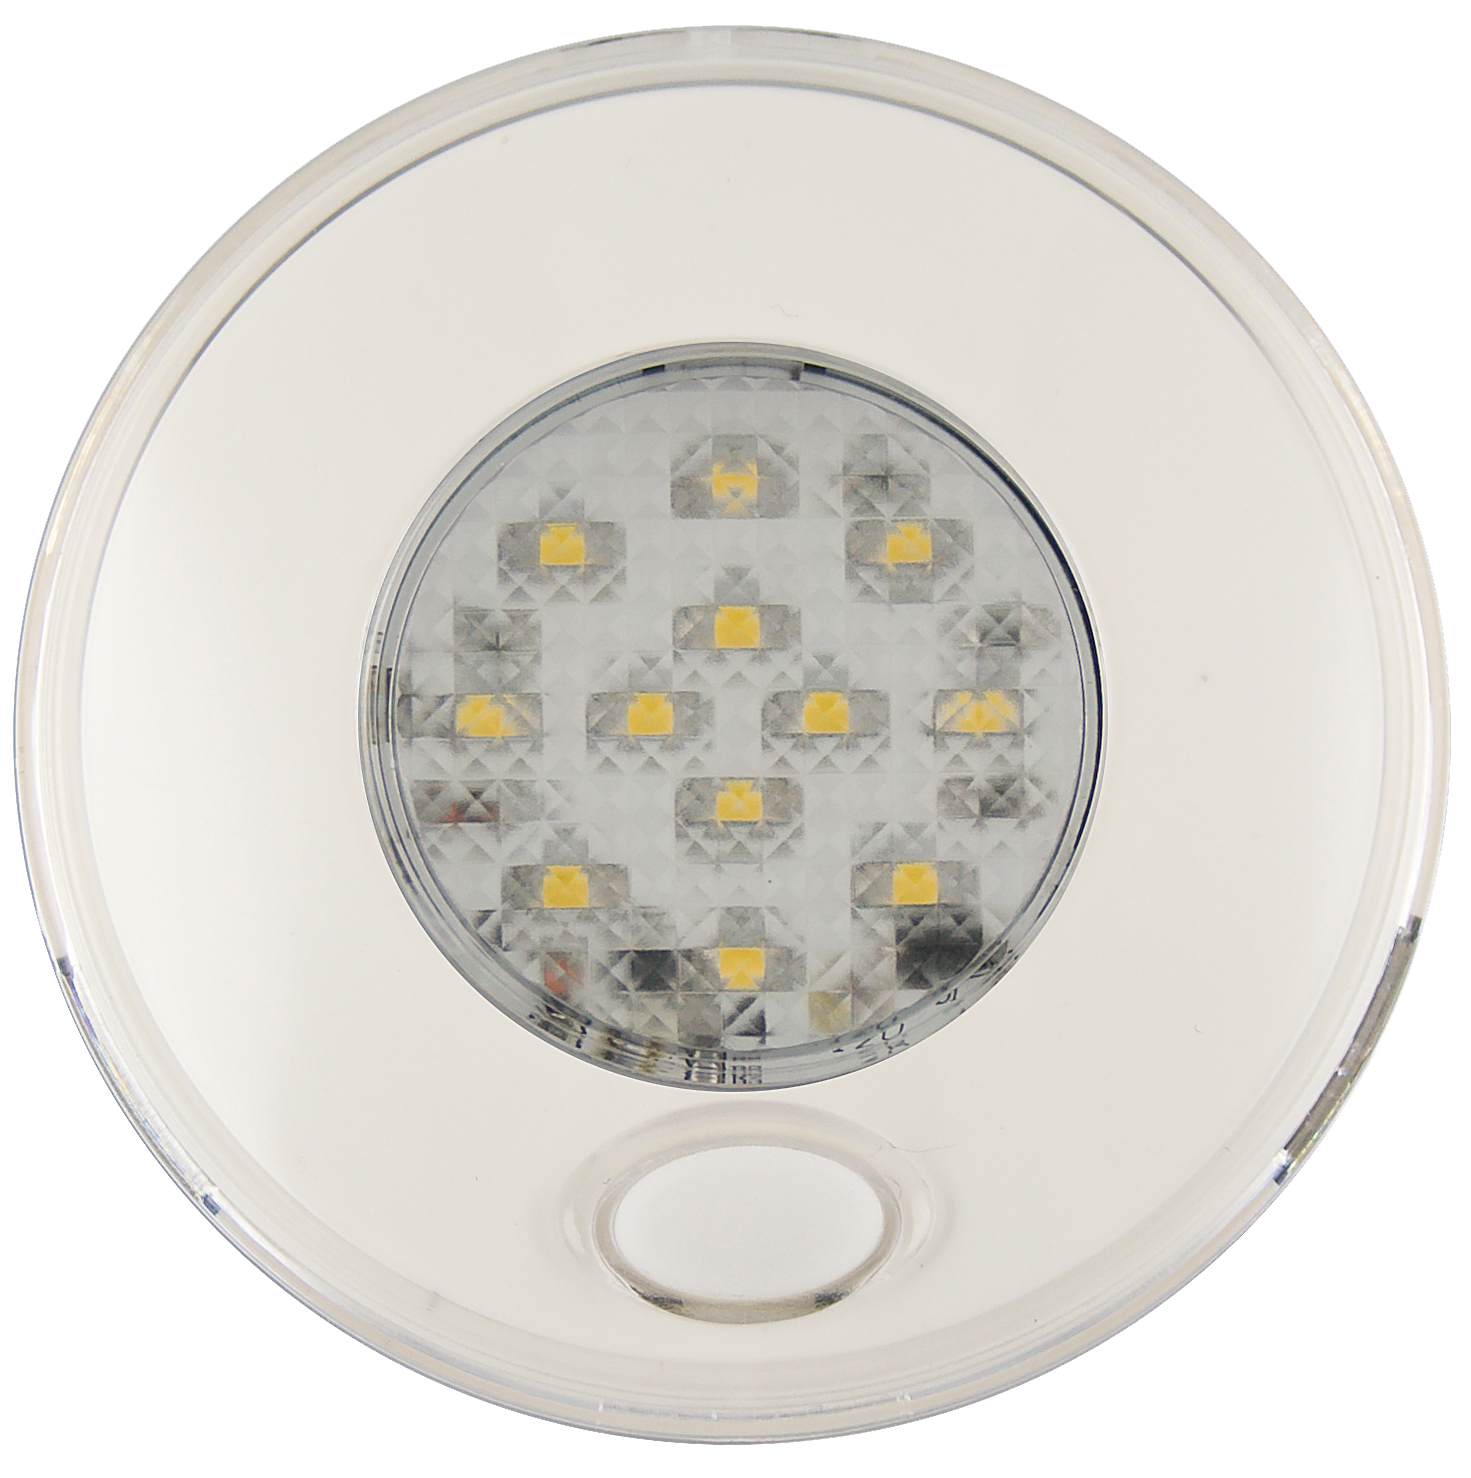 LED Autolamps Round Interior Lamps 79mm with Switch